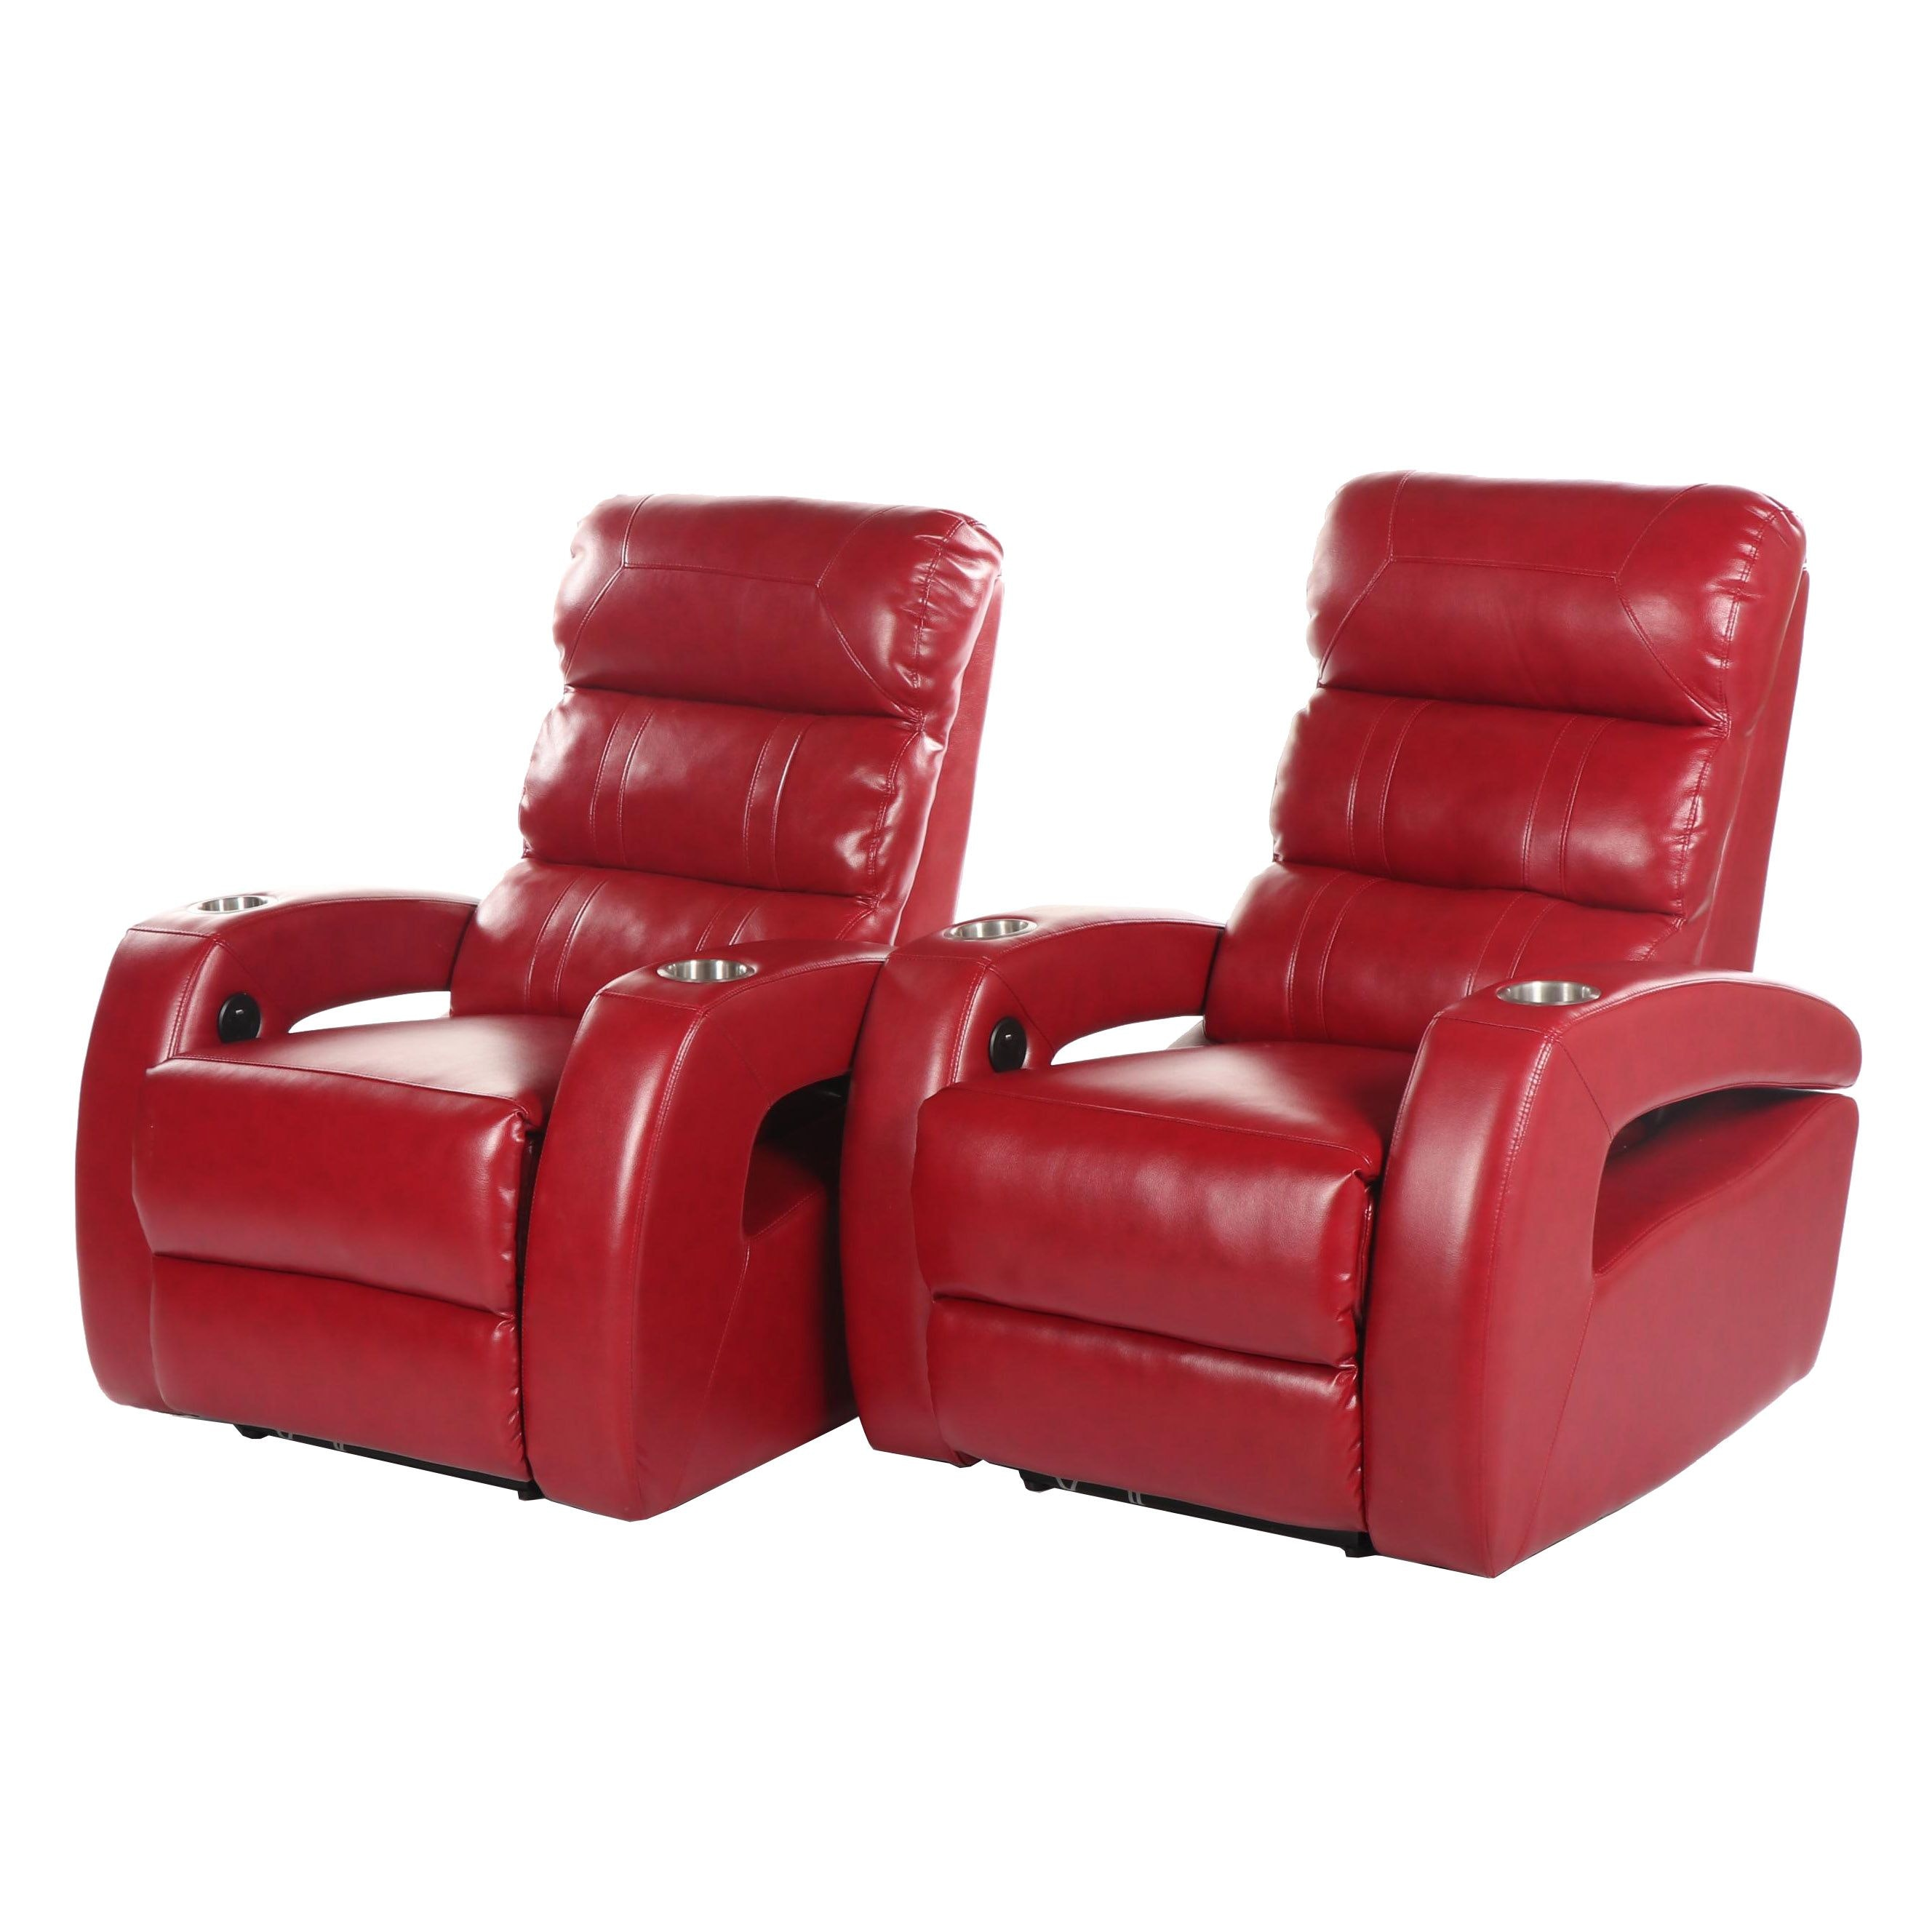 Leather Upholstered Home Theater Seats with Storage Console, 21st Century